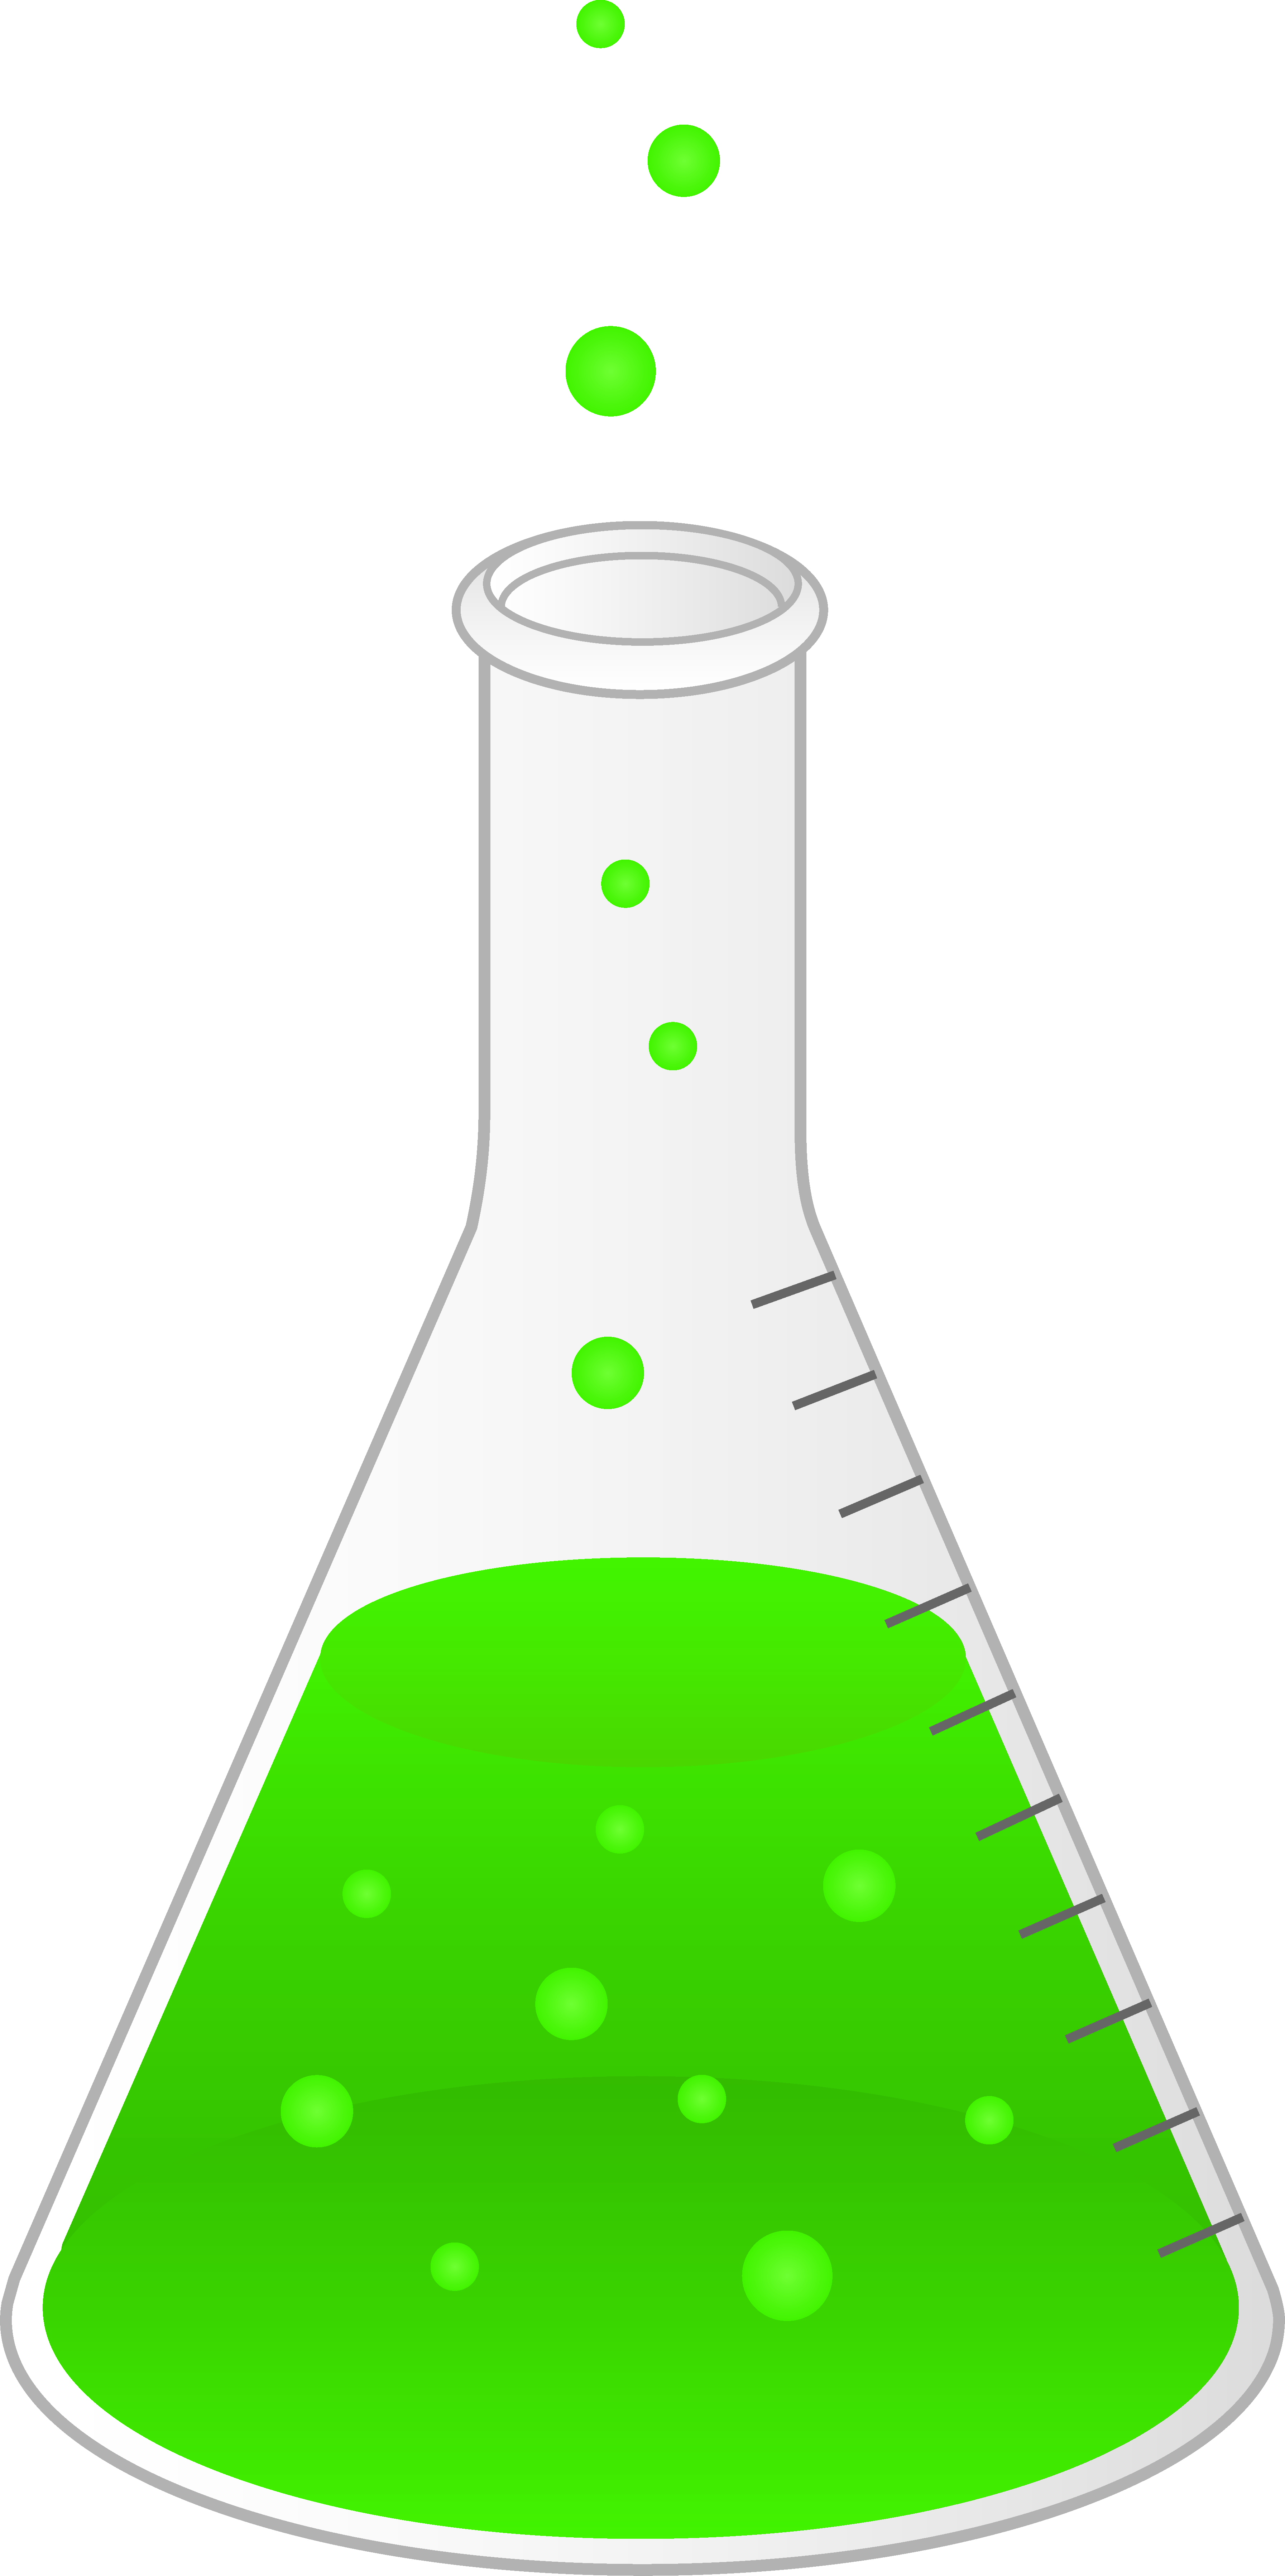 clipart test tubes and beakers - photo #21